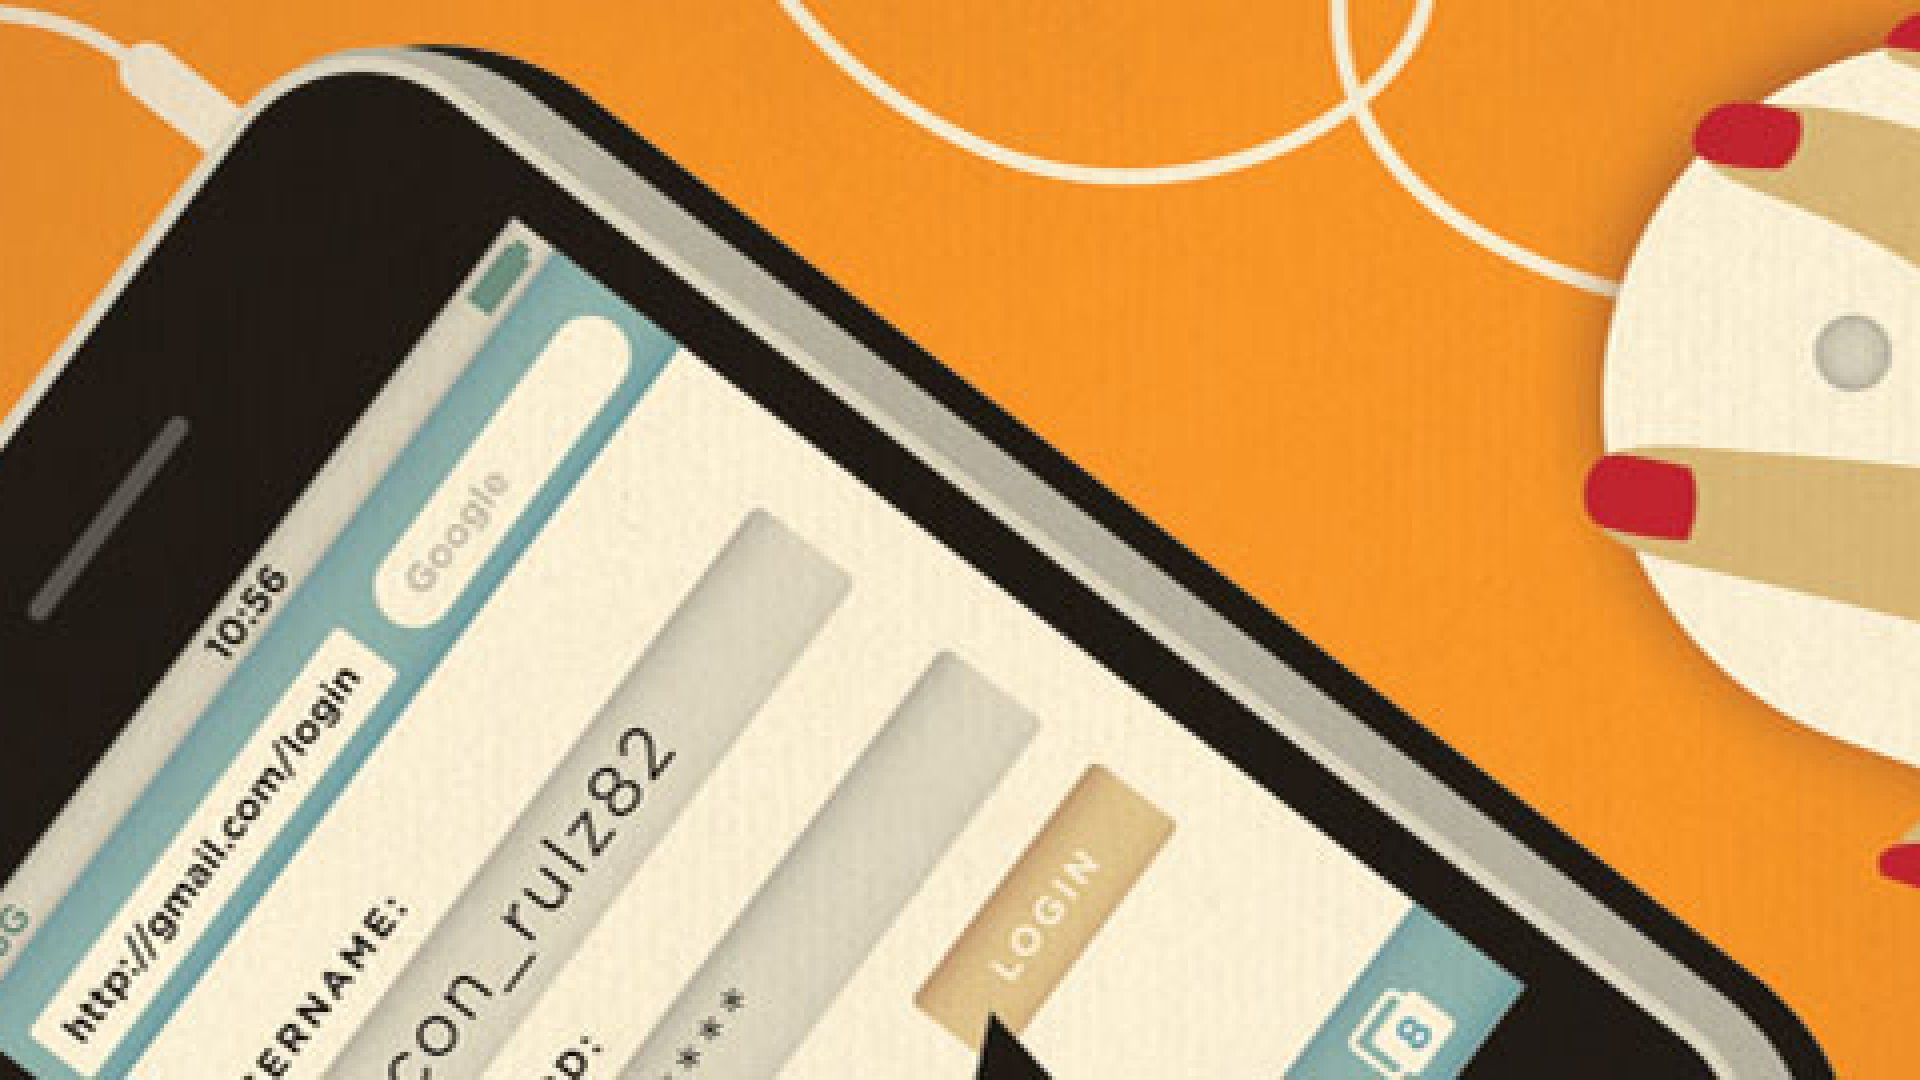 How to Put Your Website on Cell-Phone Screens